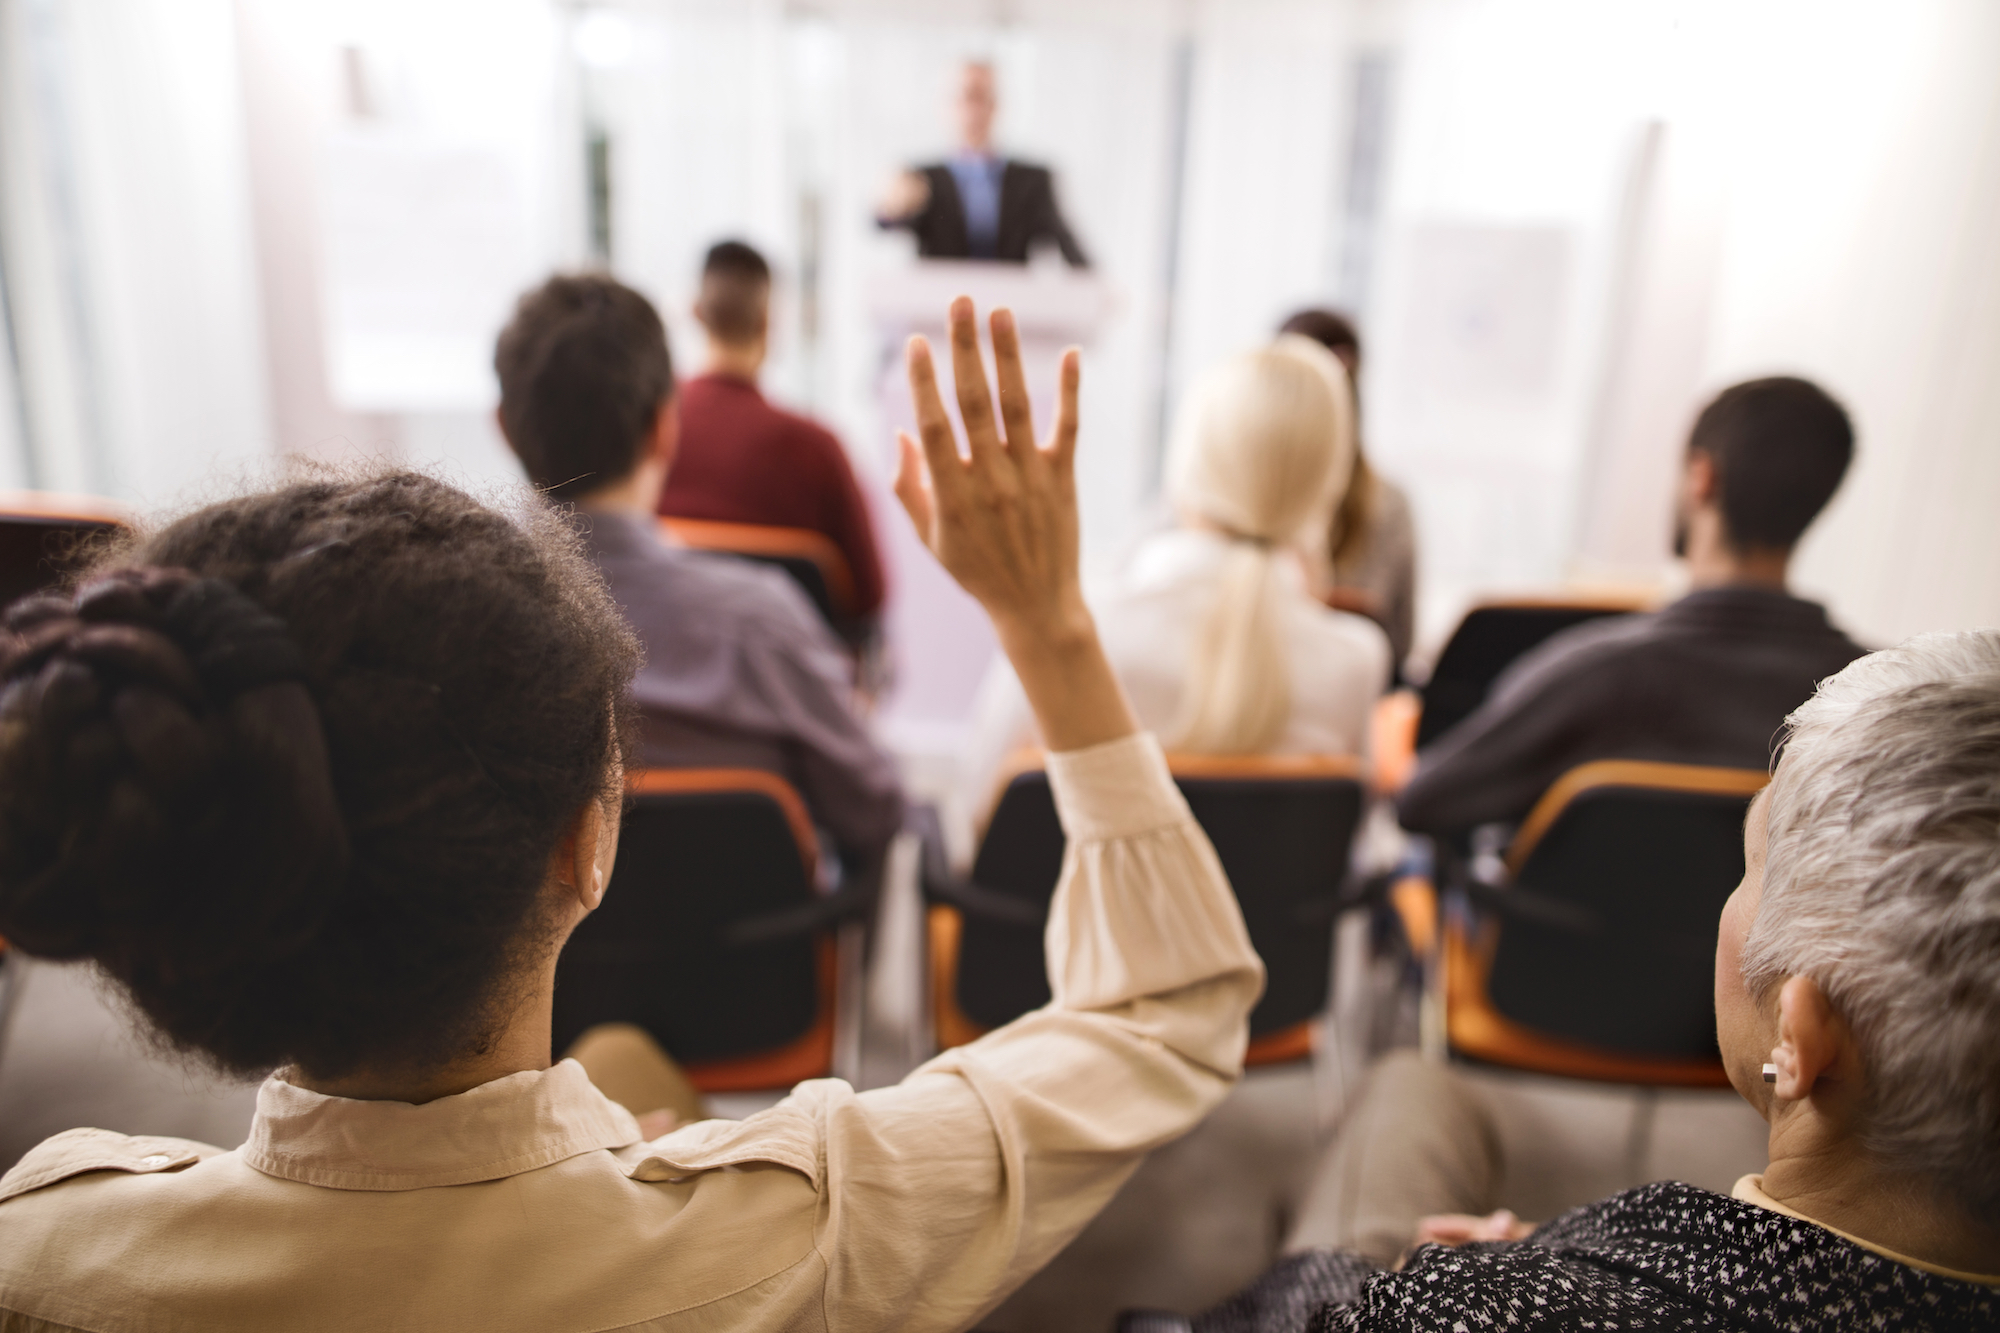 woman raising her hand to ask a question at a seminar or conference session